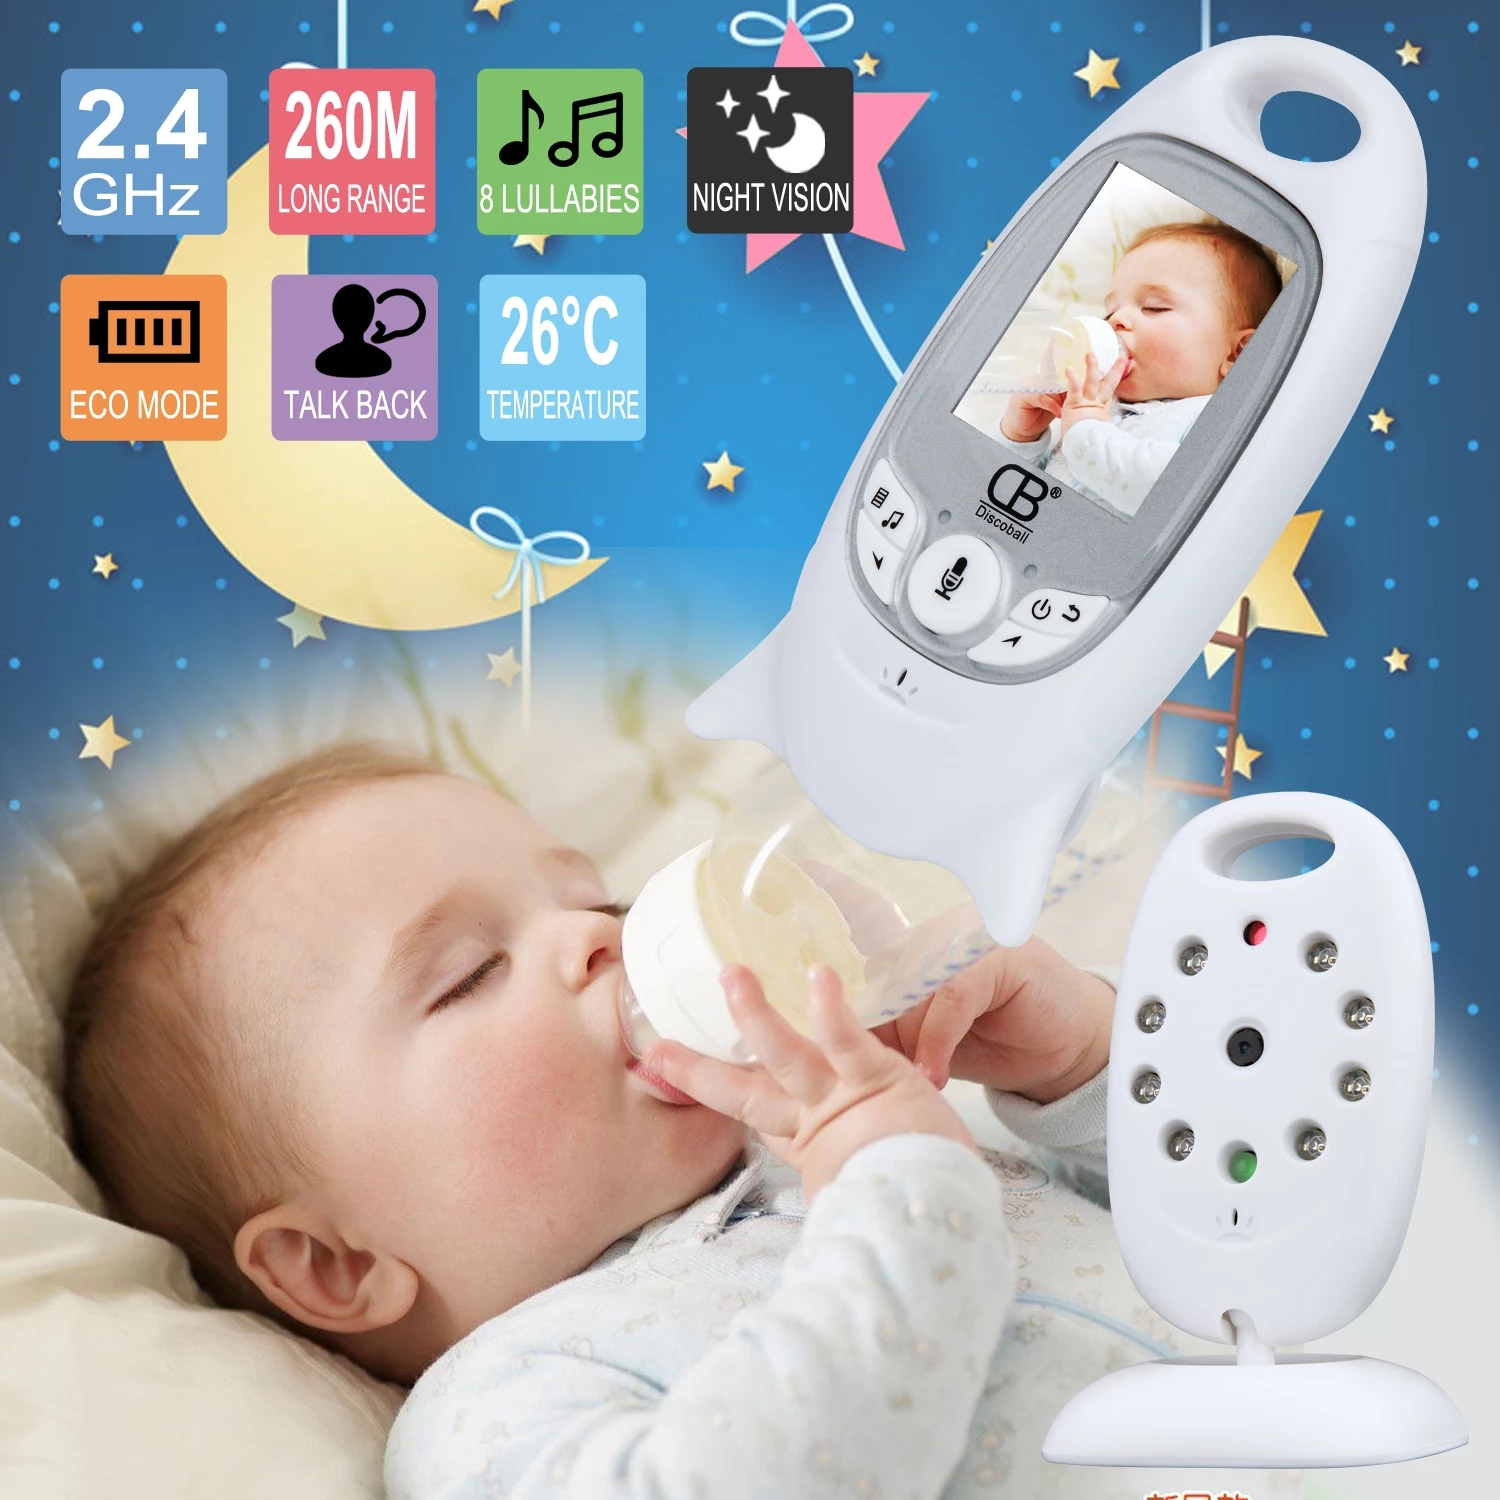 Wireless Video Baby Monitor 2.0 Inch Color Security Camera 2 Way Talk Night Vision IR LED Temperature Monitoring With 8 Lullaby